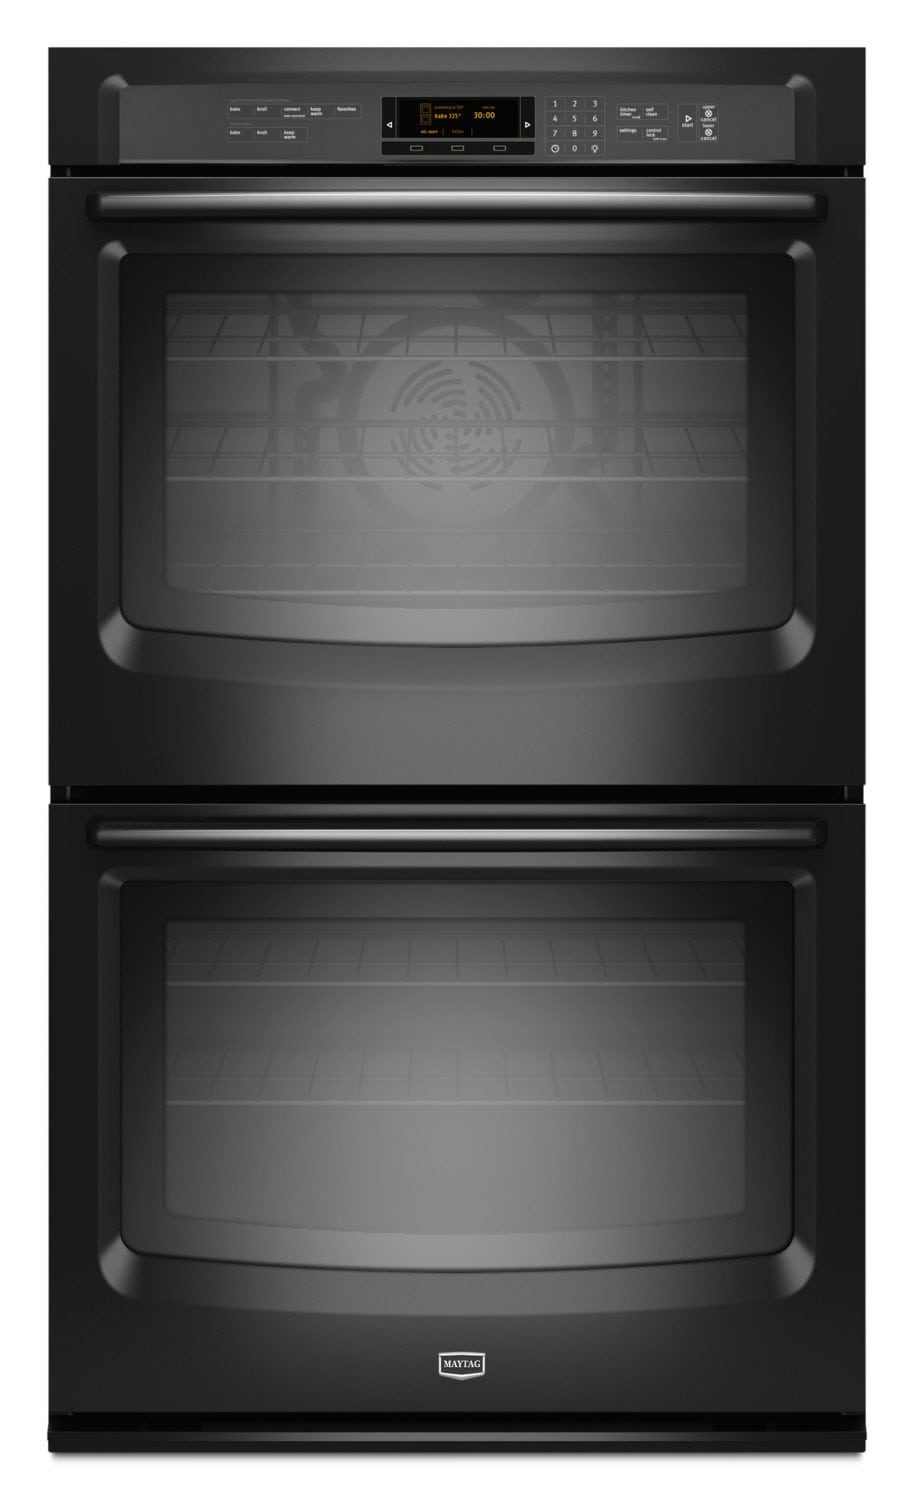 Maytag 10 Cu. Ft. Double Wall Oven – MEW9627FB